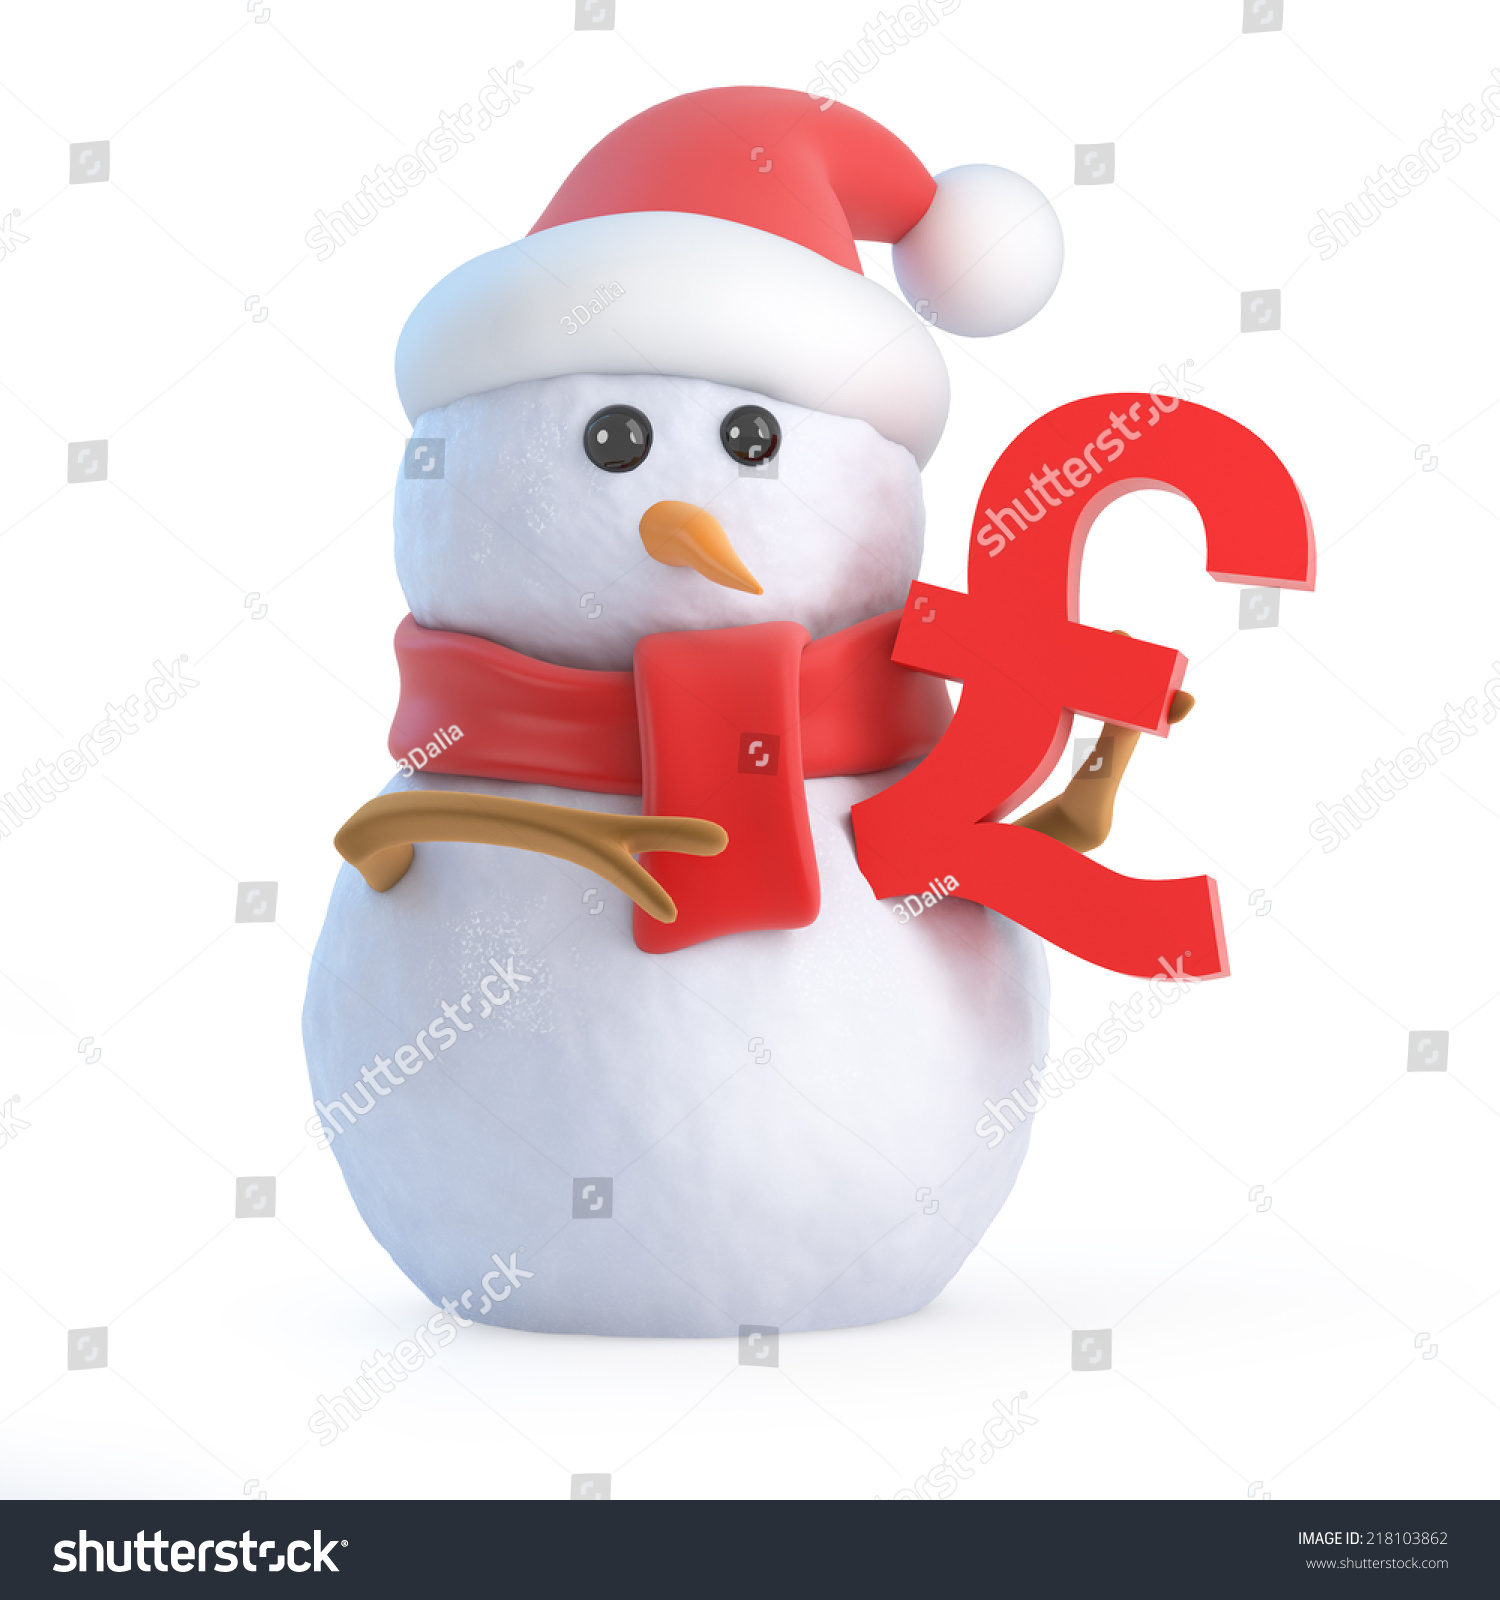 3d Render Of A Snowman Holding A Euro Currency Symbol Ez Canvas